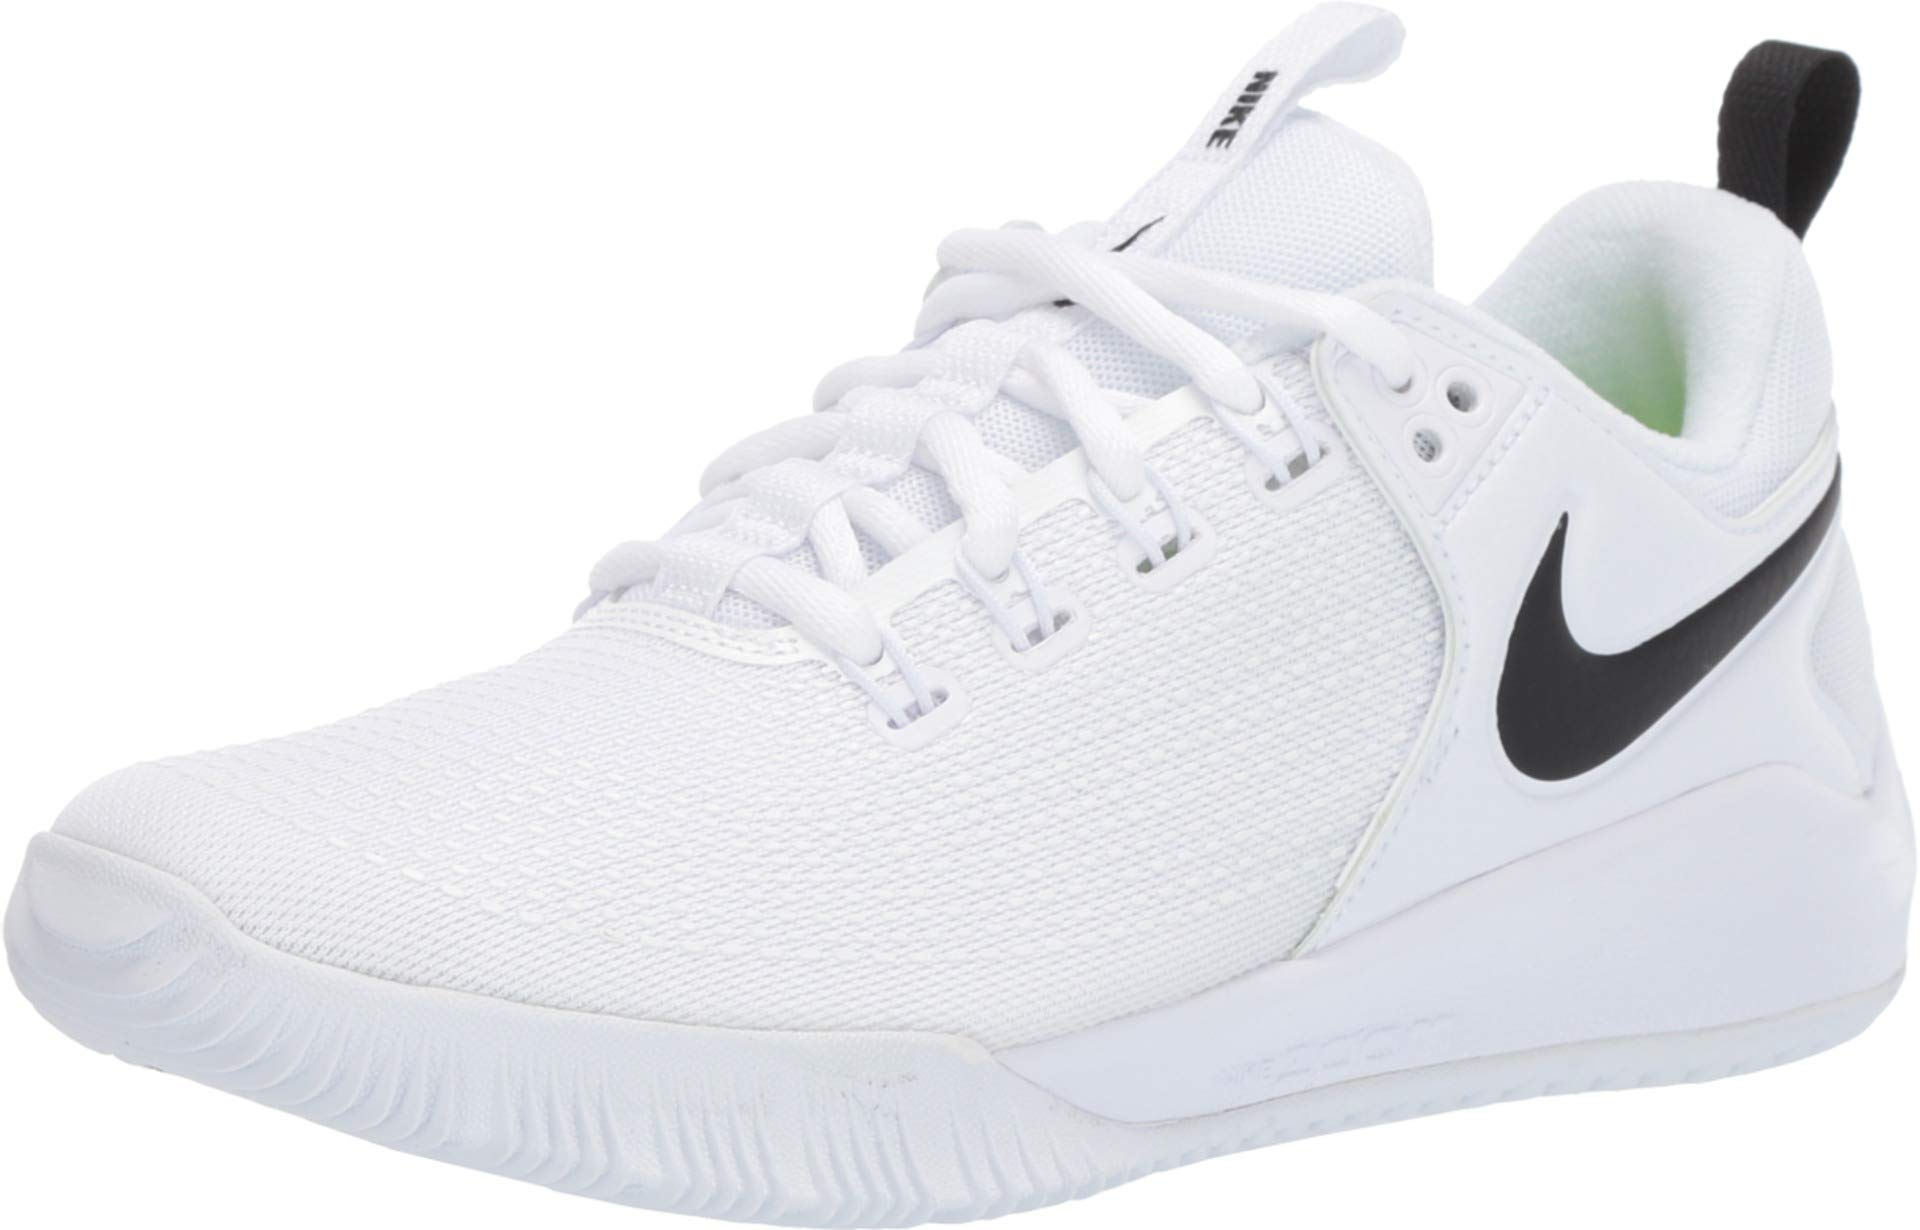 Nike Women's Zoom Hyperface 2 Volleyball Shoes (8.5 B(M) US, White/Black) by Nike